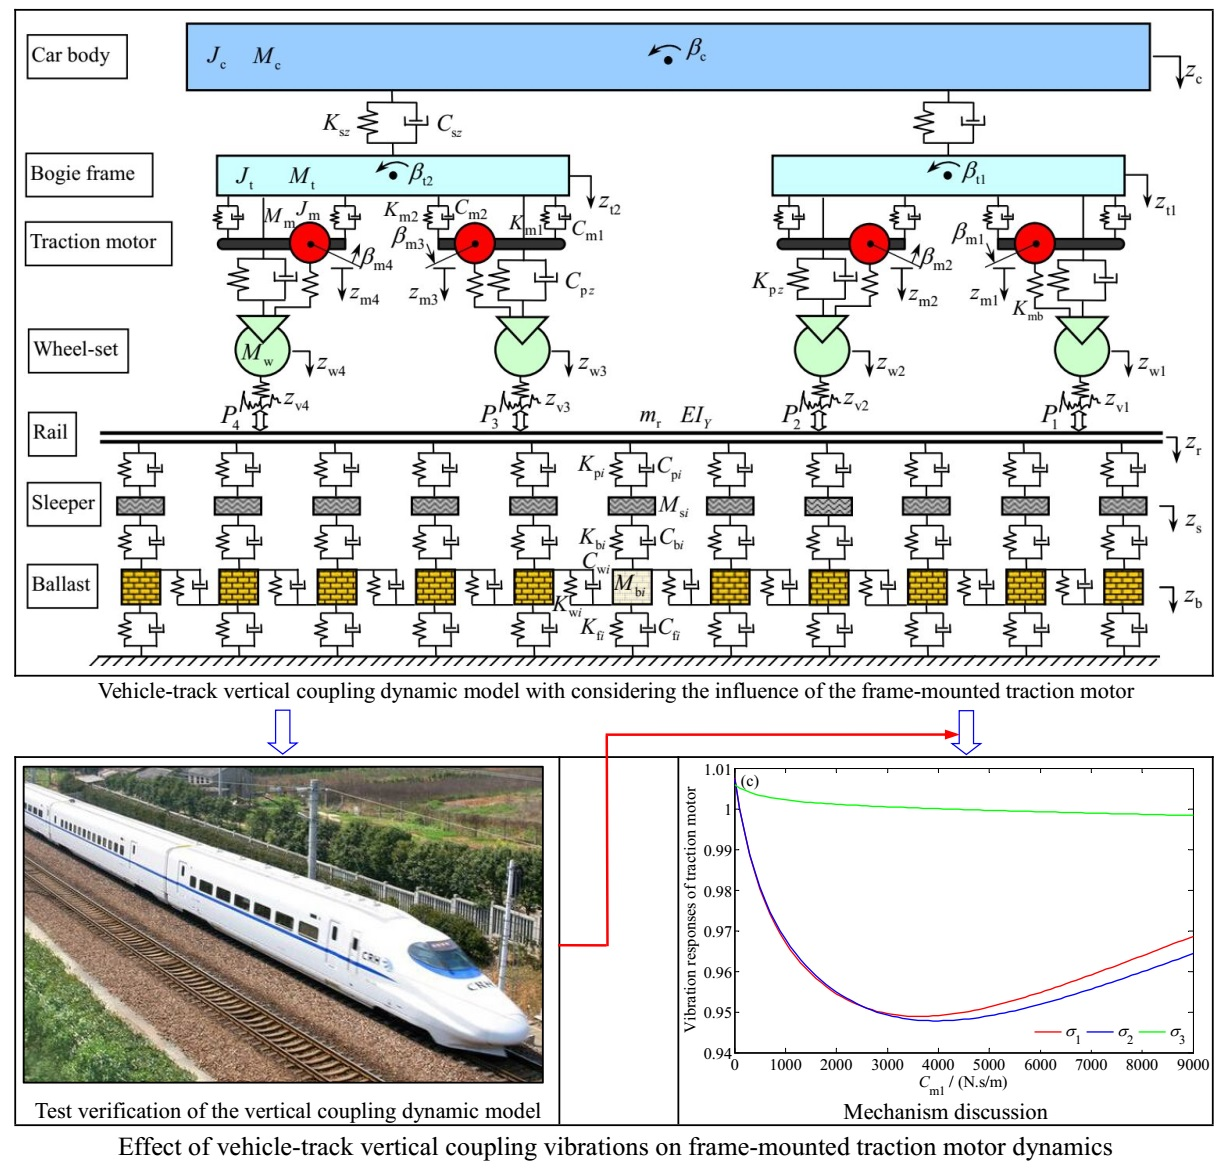 Effect of vehicle-track vertical coupling vibrations on frame-mounted traction motor dynamics